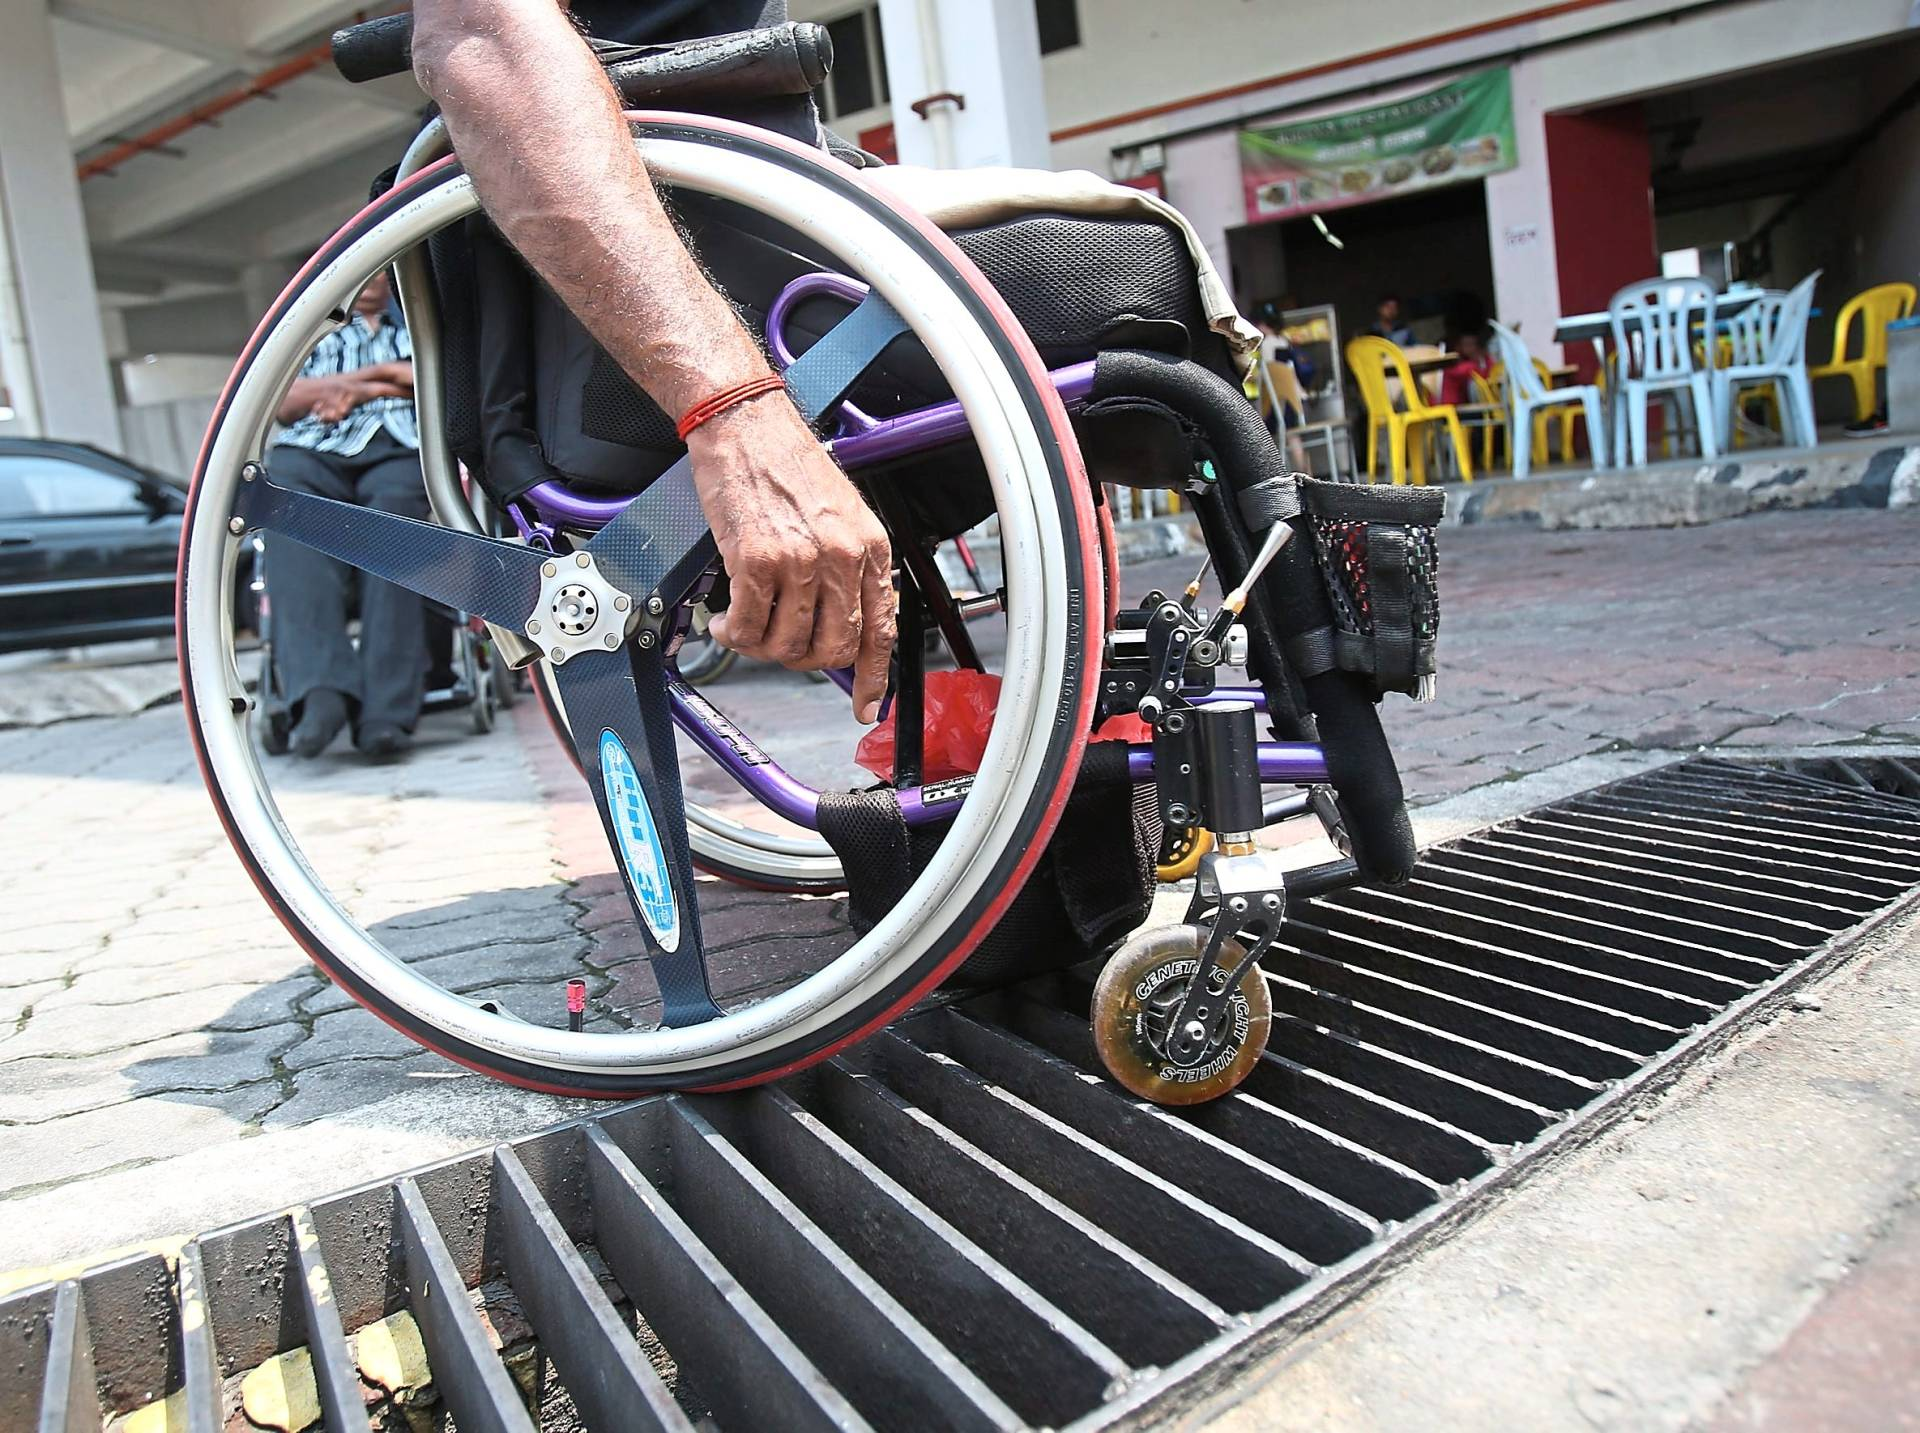 Committed to fighting for rights of the disabled